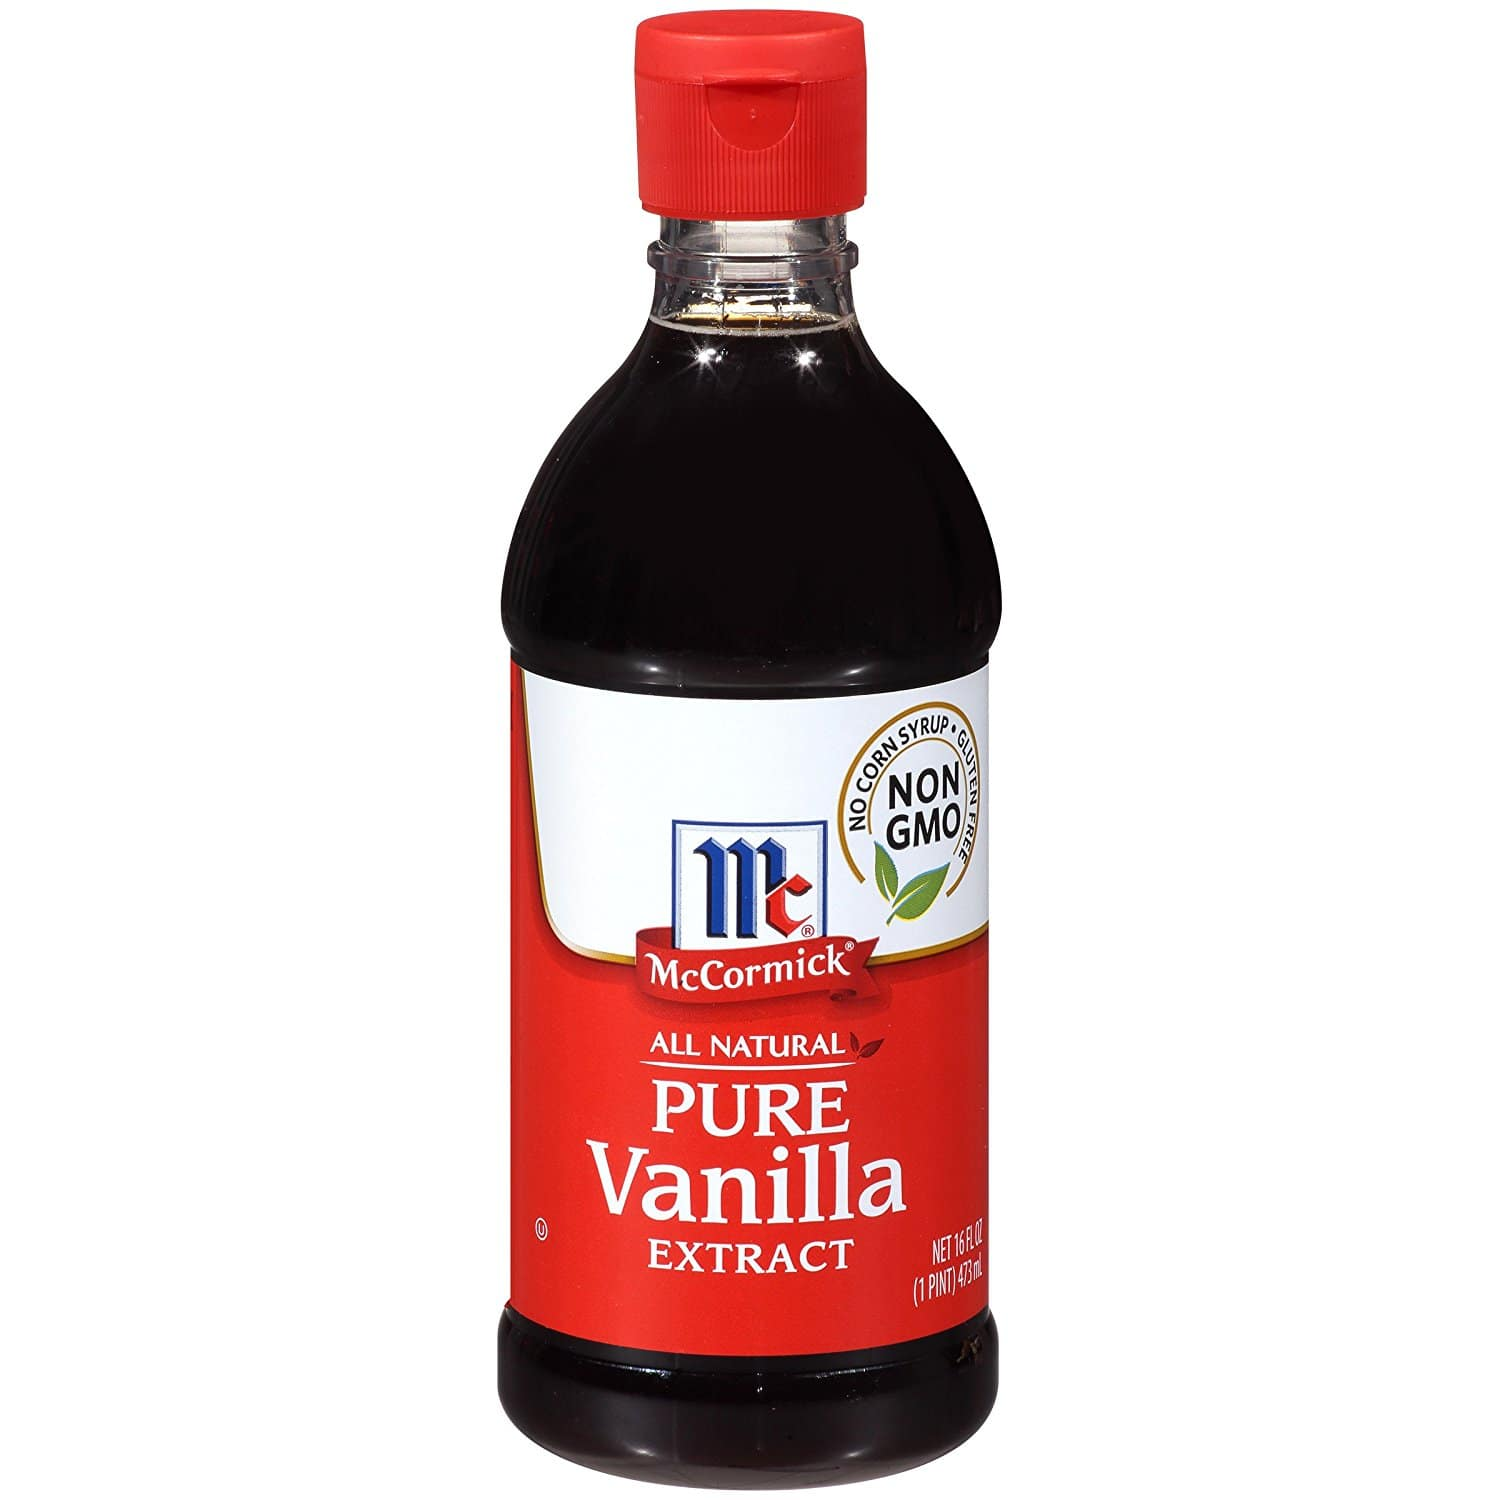 McCormick Pure Vanilla Extract, 16 fl oz $18.93 or lower with SS Amazon $19.93